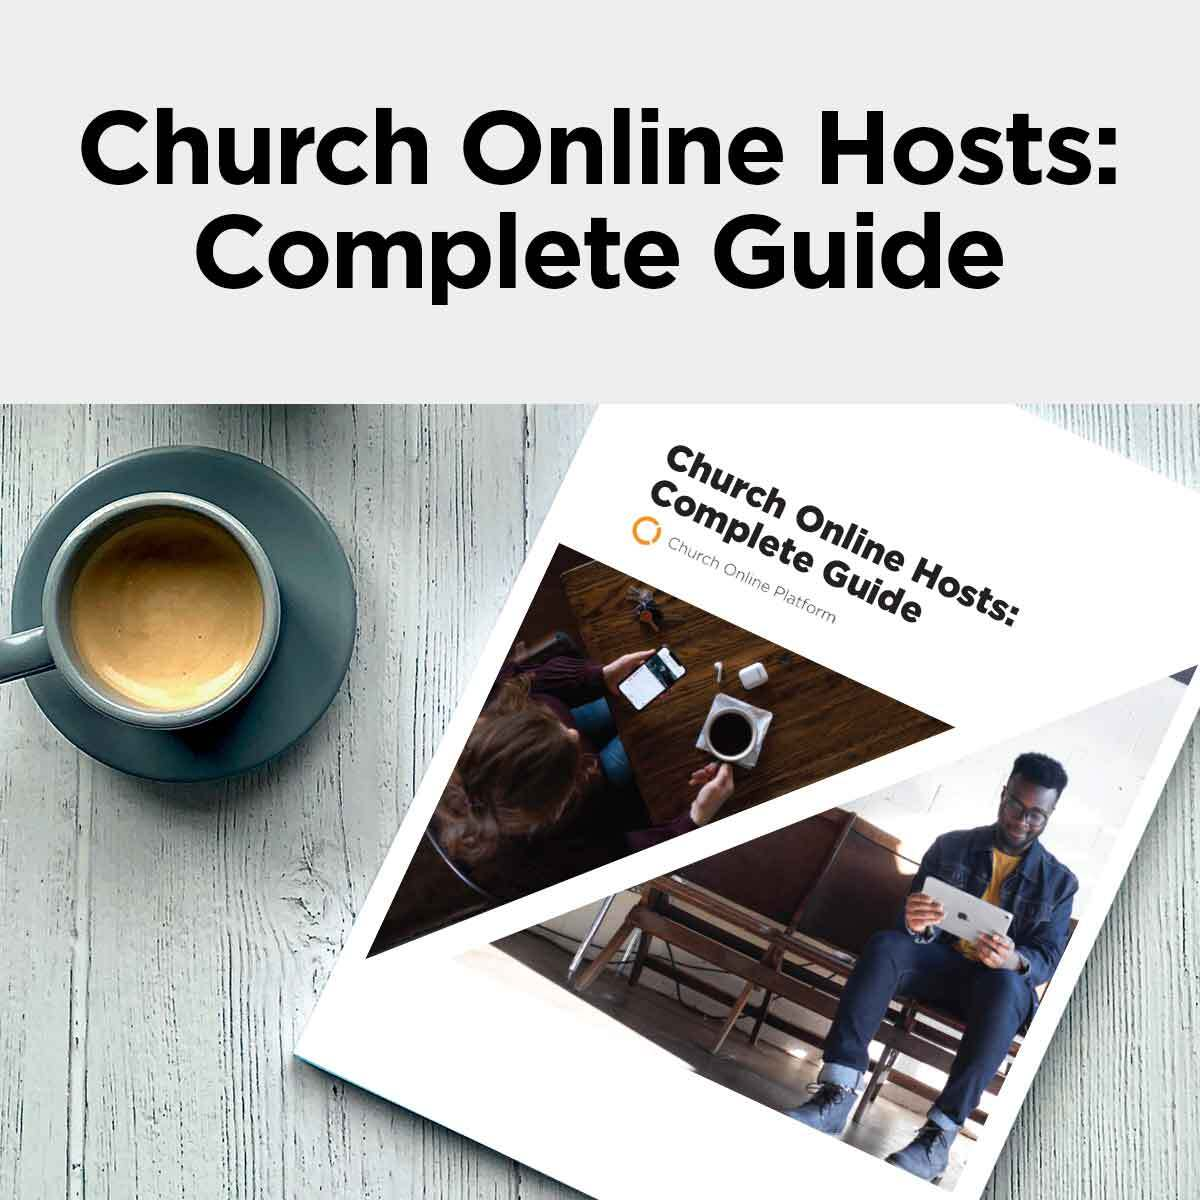 Church Online Hosts: Complete Guide